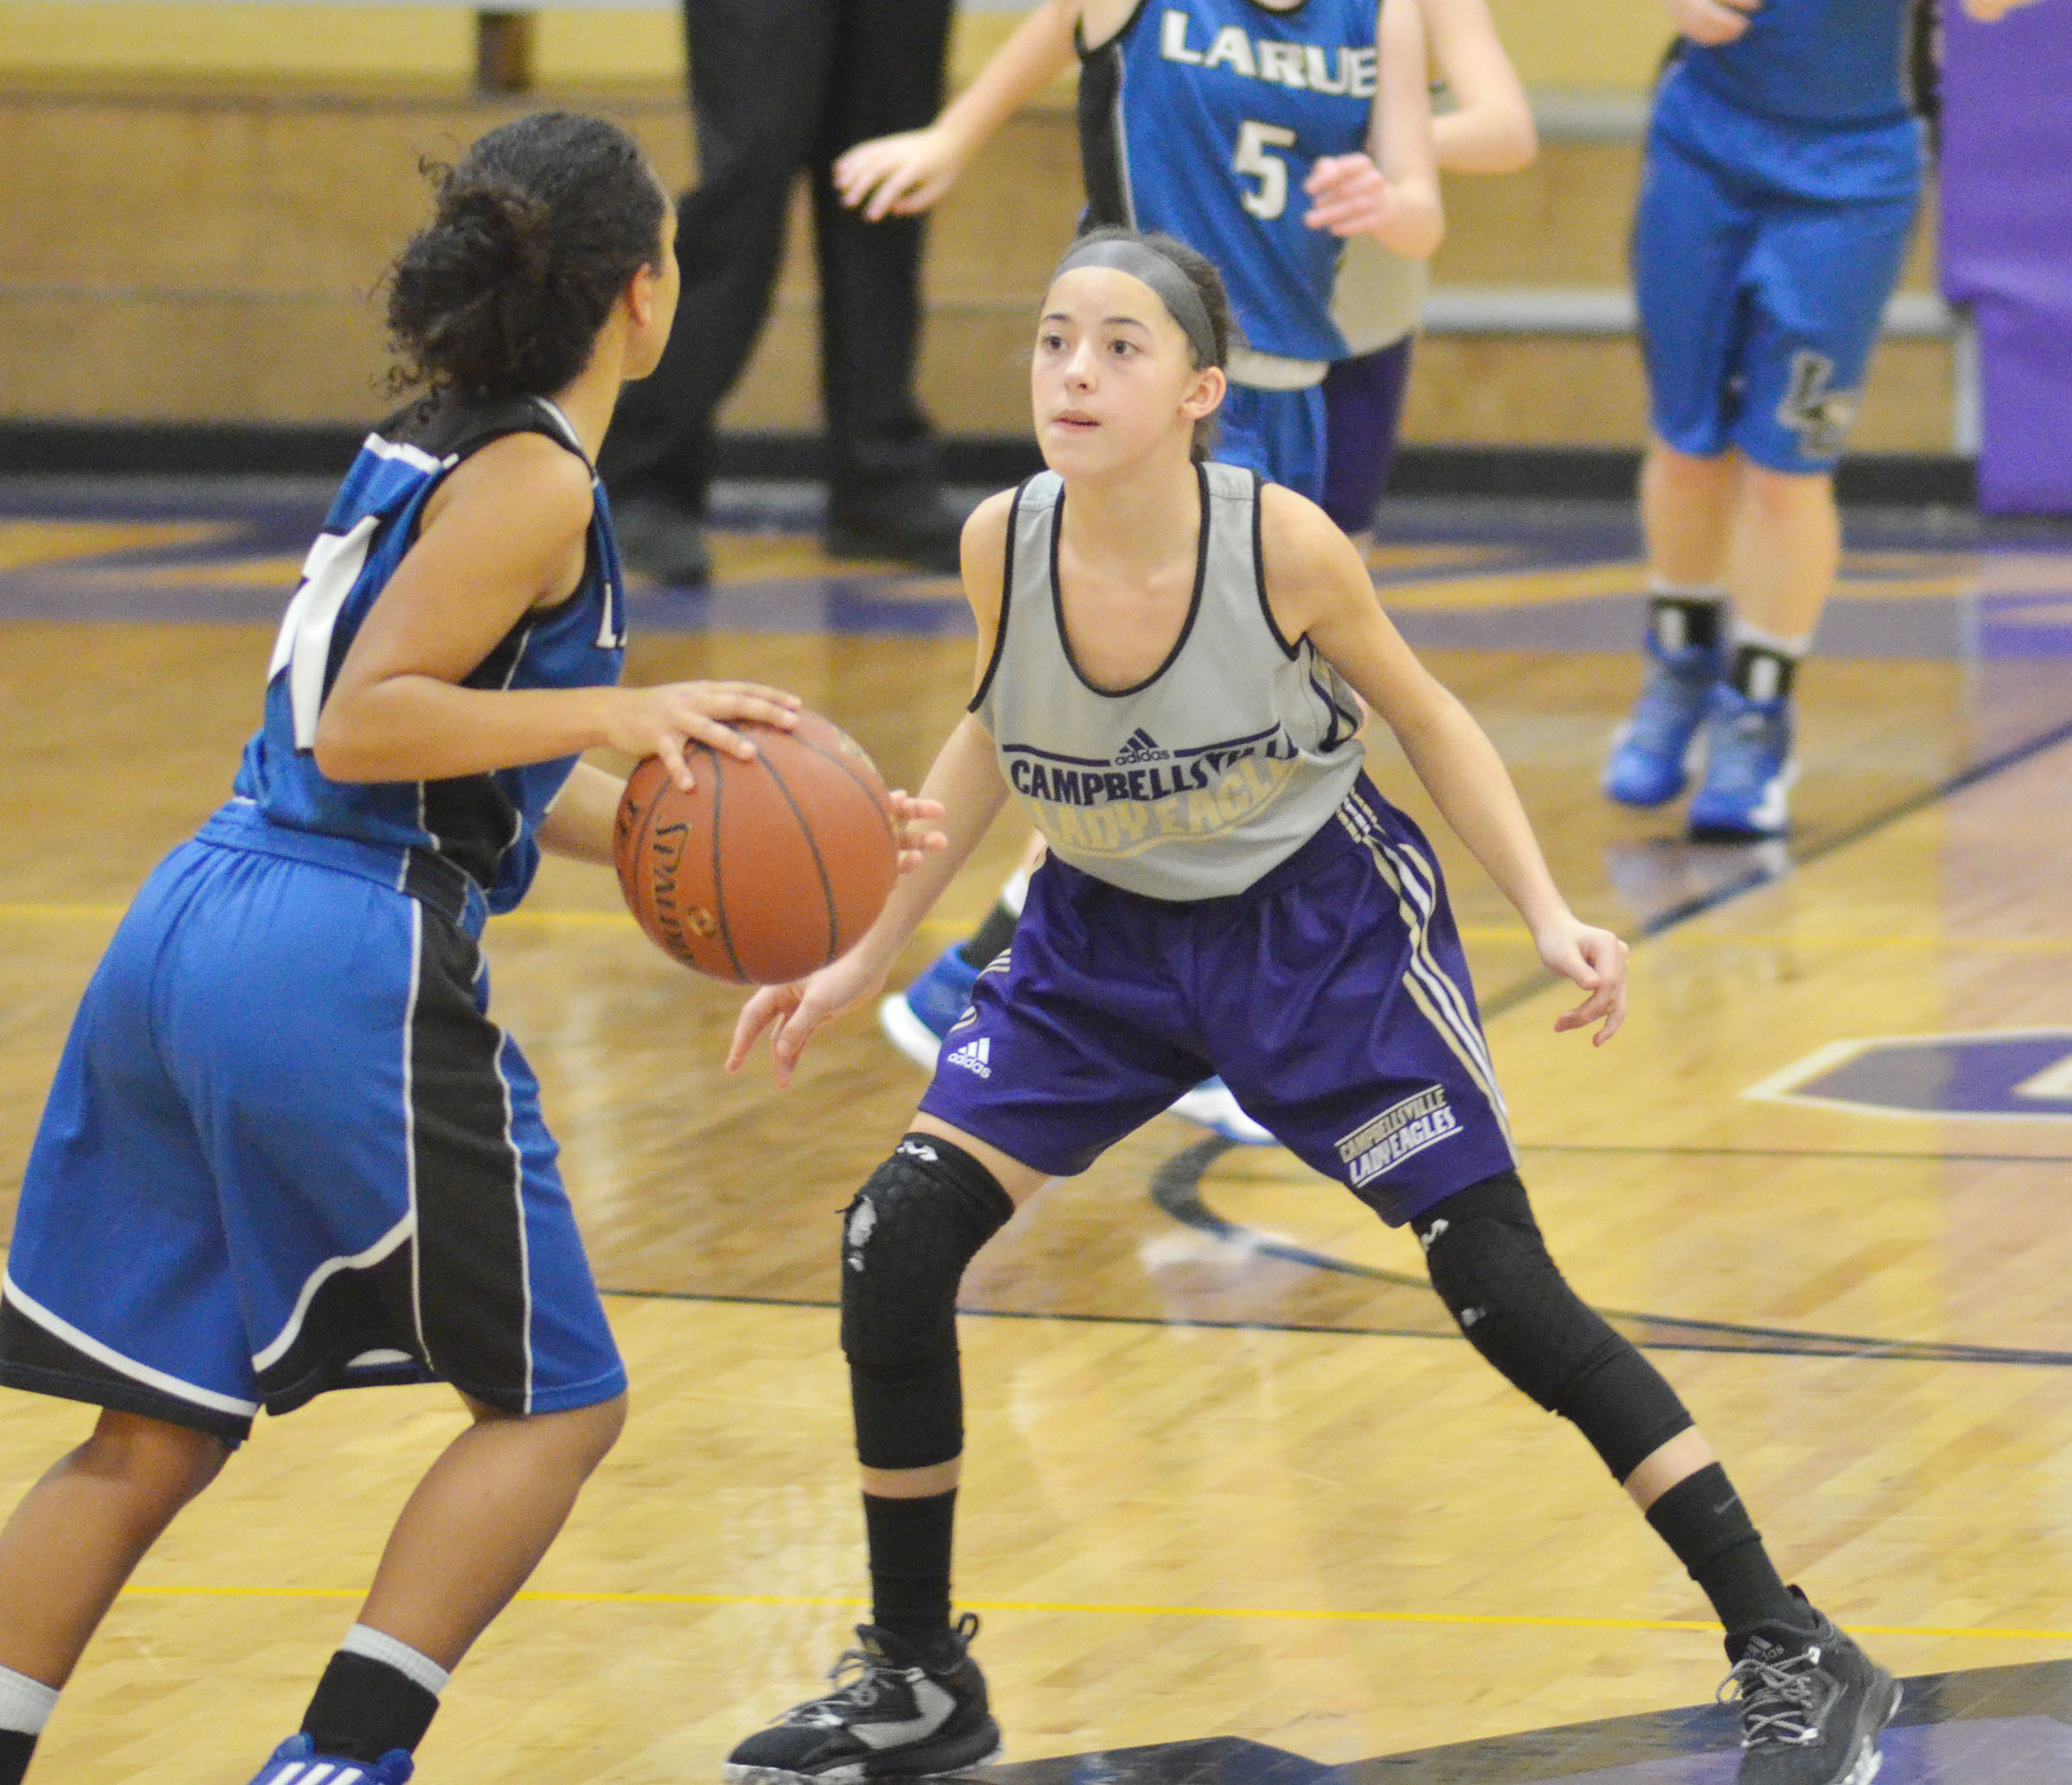 Campbellsville Middle School seventh-grader Kaylyn Smith plays defense.